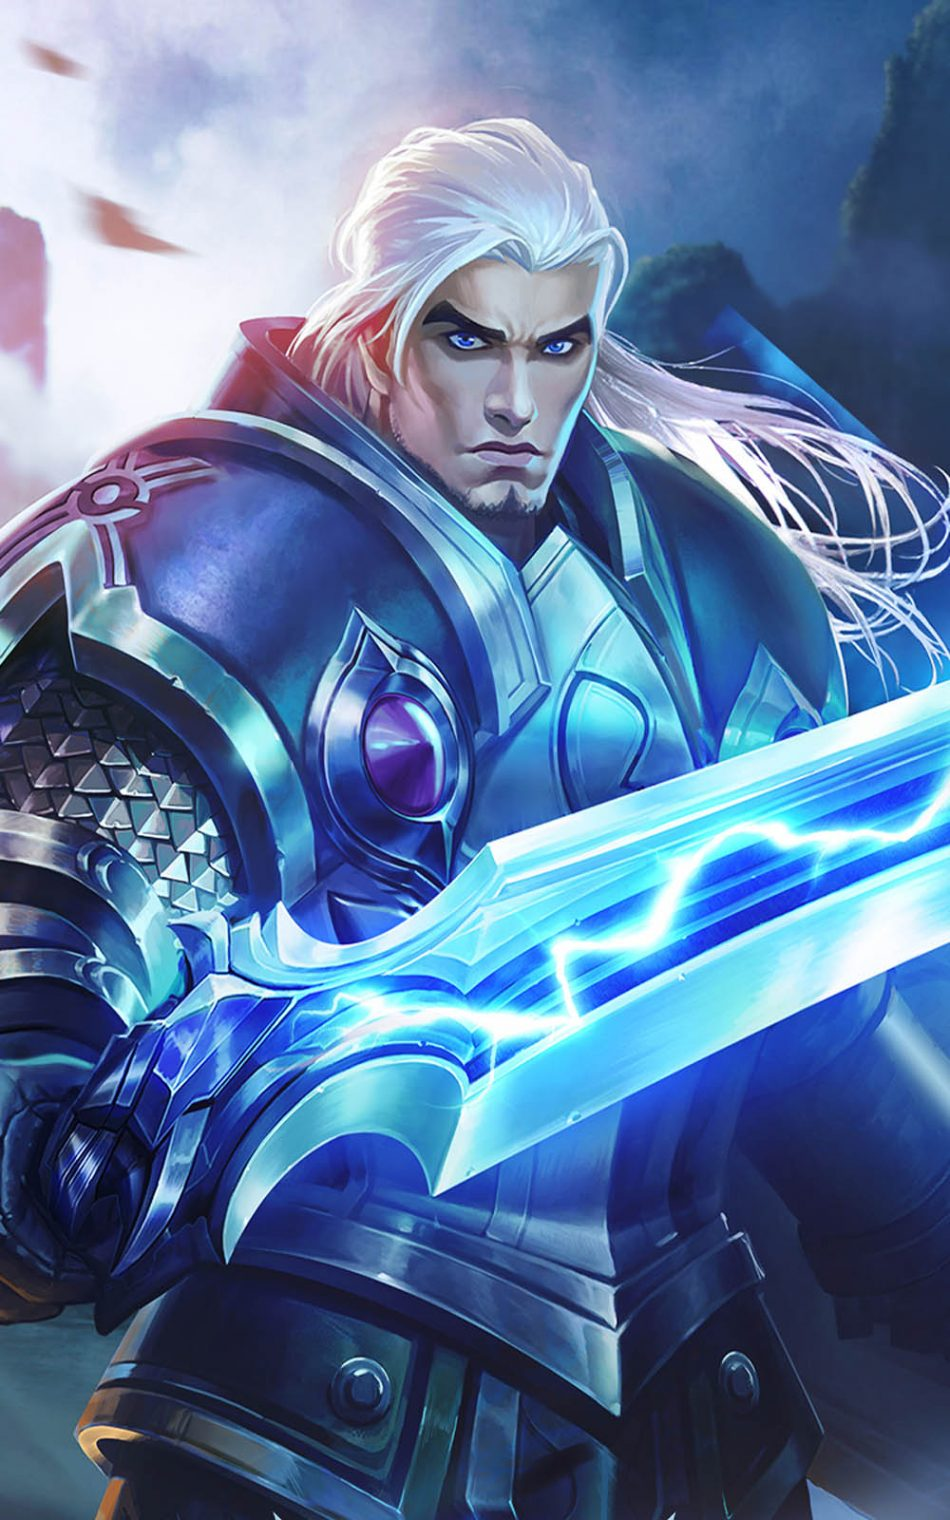 download wallpaper Tigreal mobile legends hd